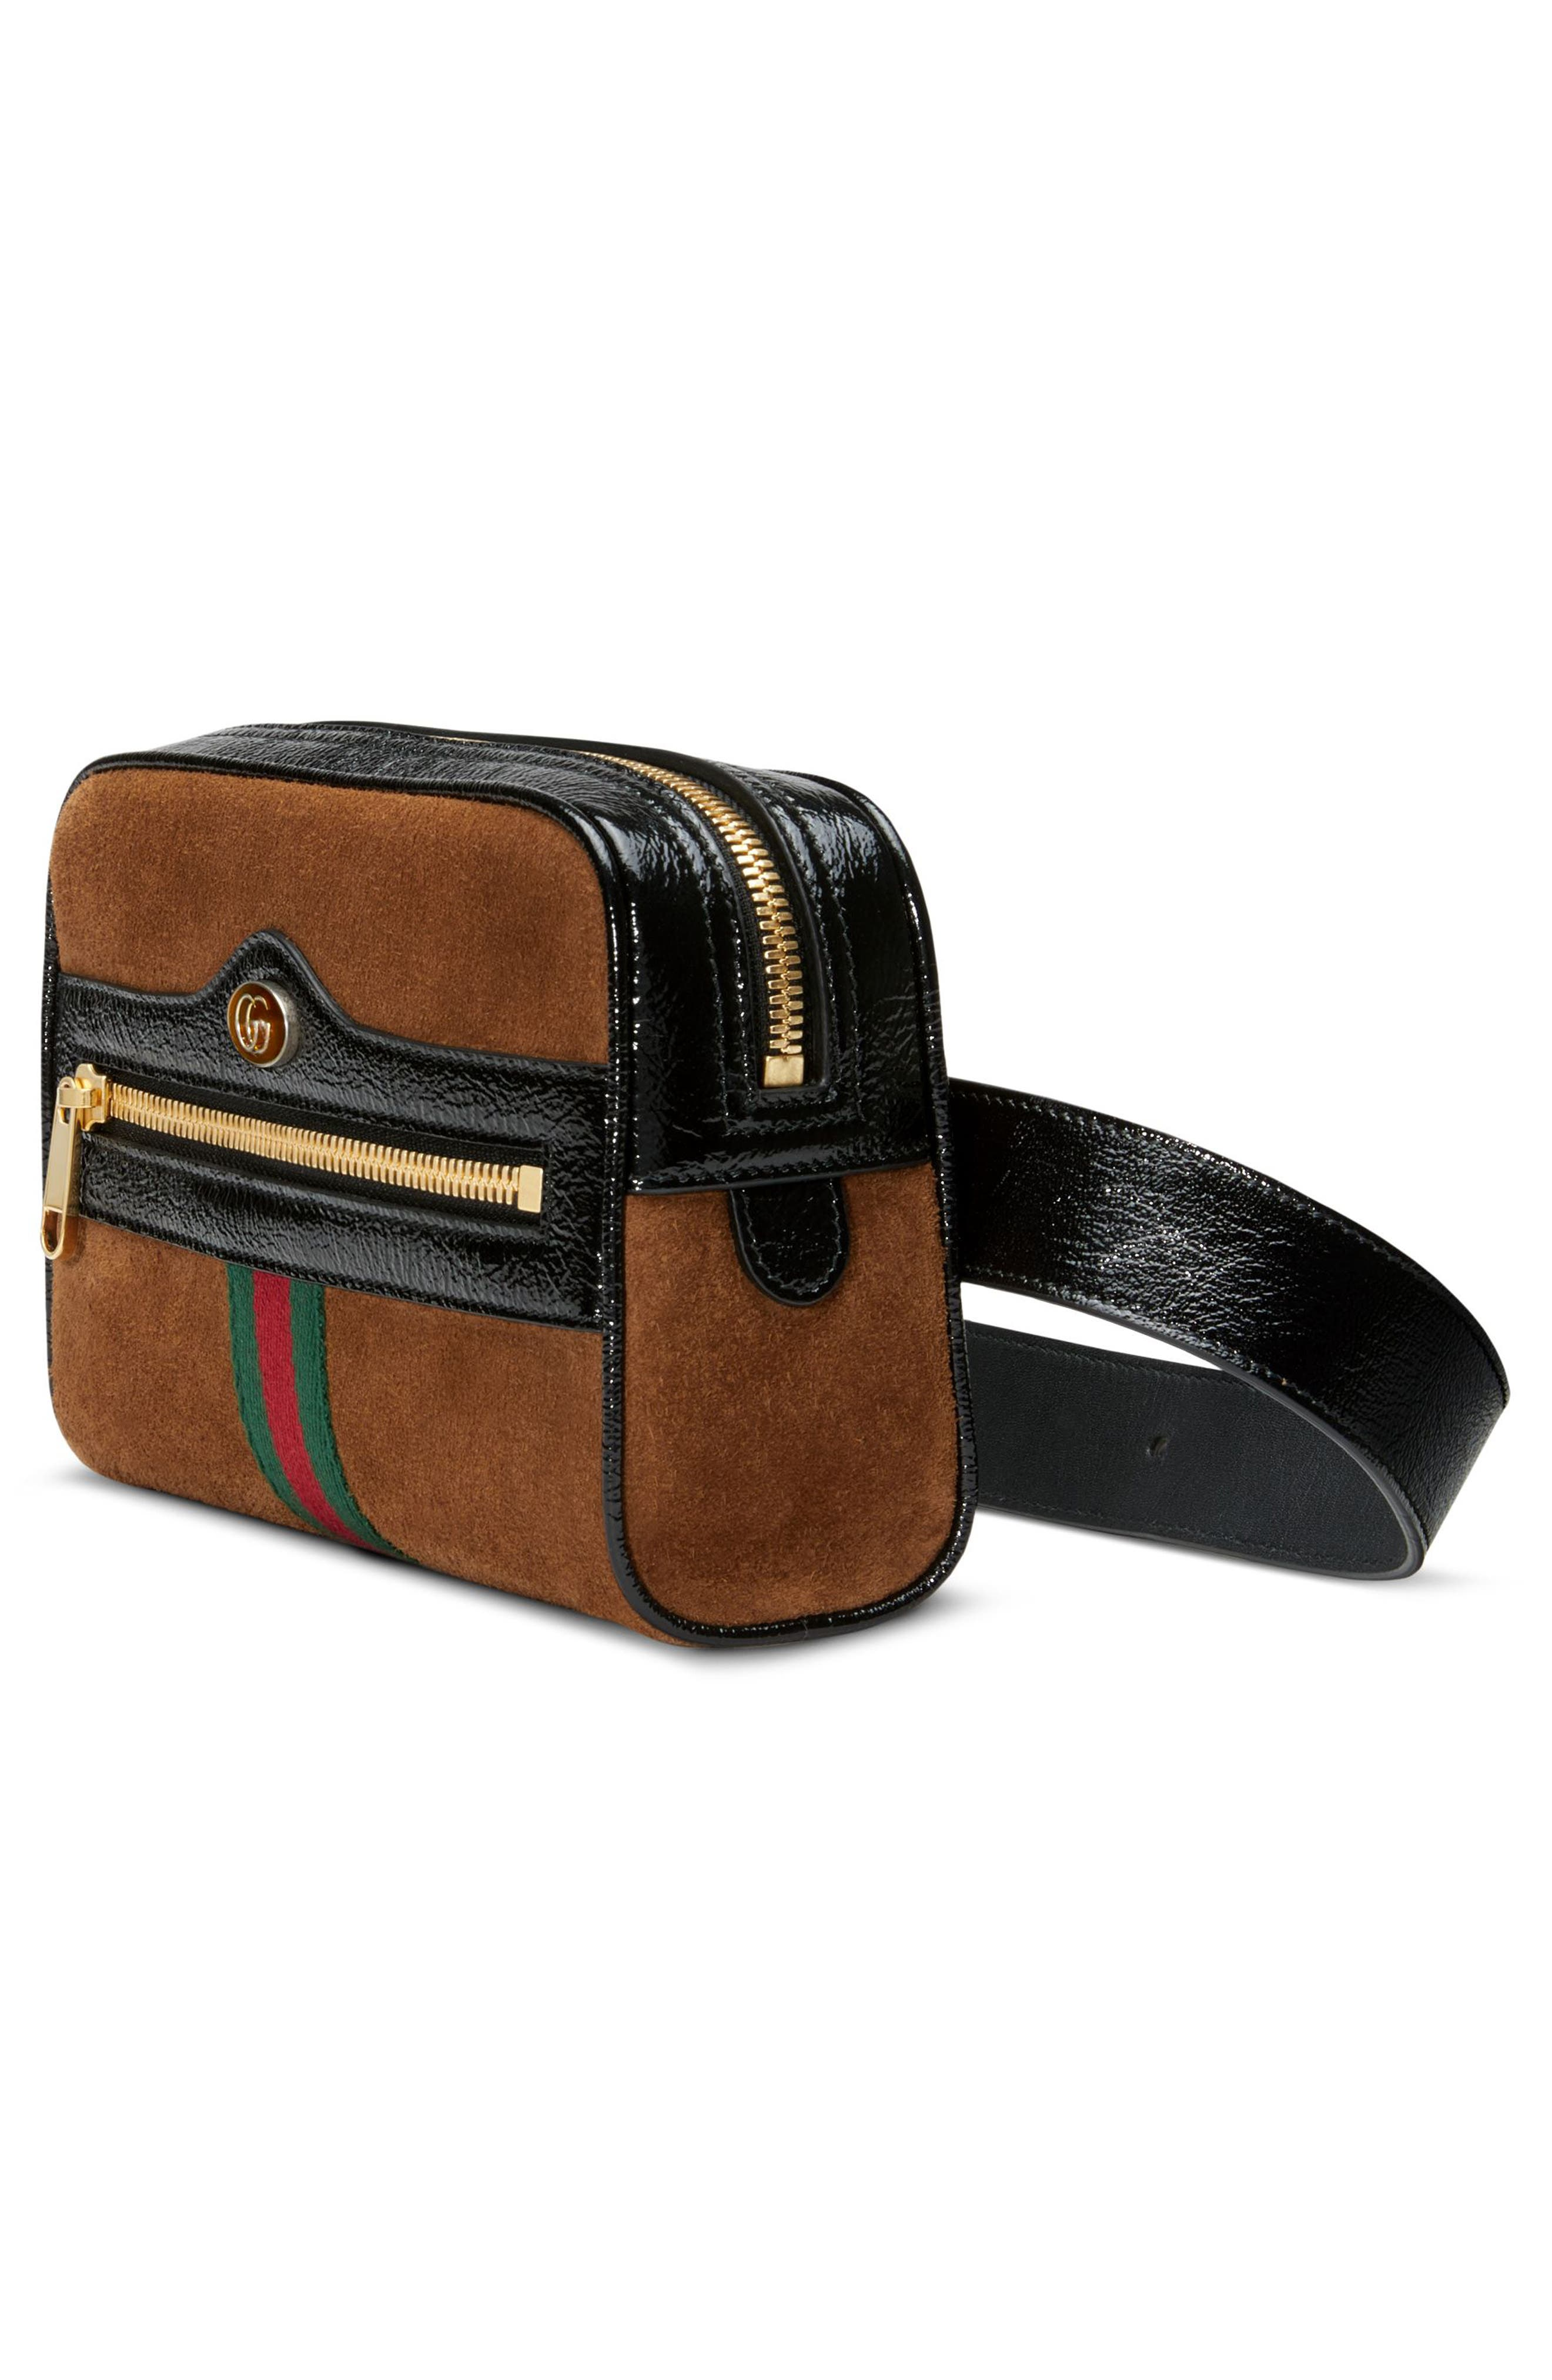 Ophidia Small Suede Belt Bag,                             Alternate thumbnail 6, color,                             NOCCIOLA/ NERO/ VERT RED